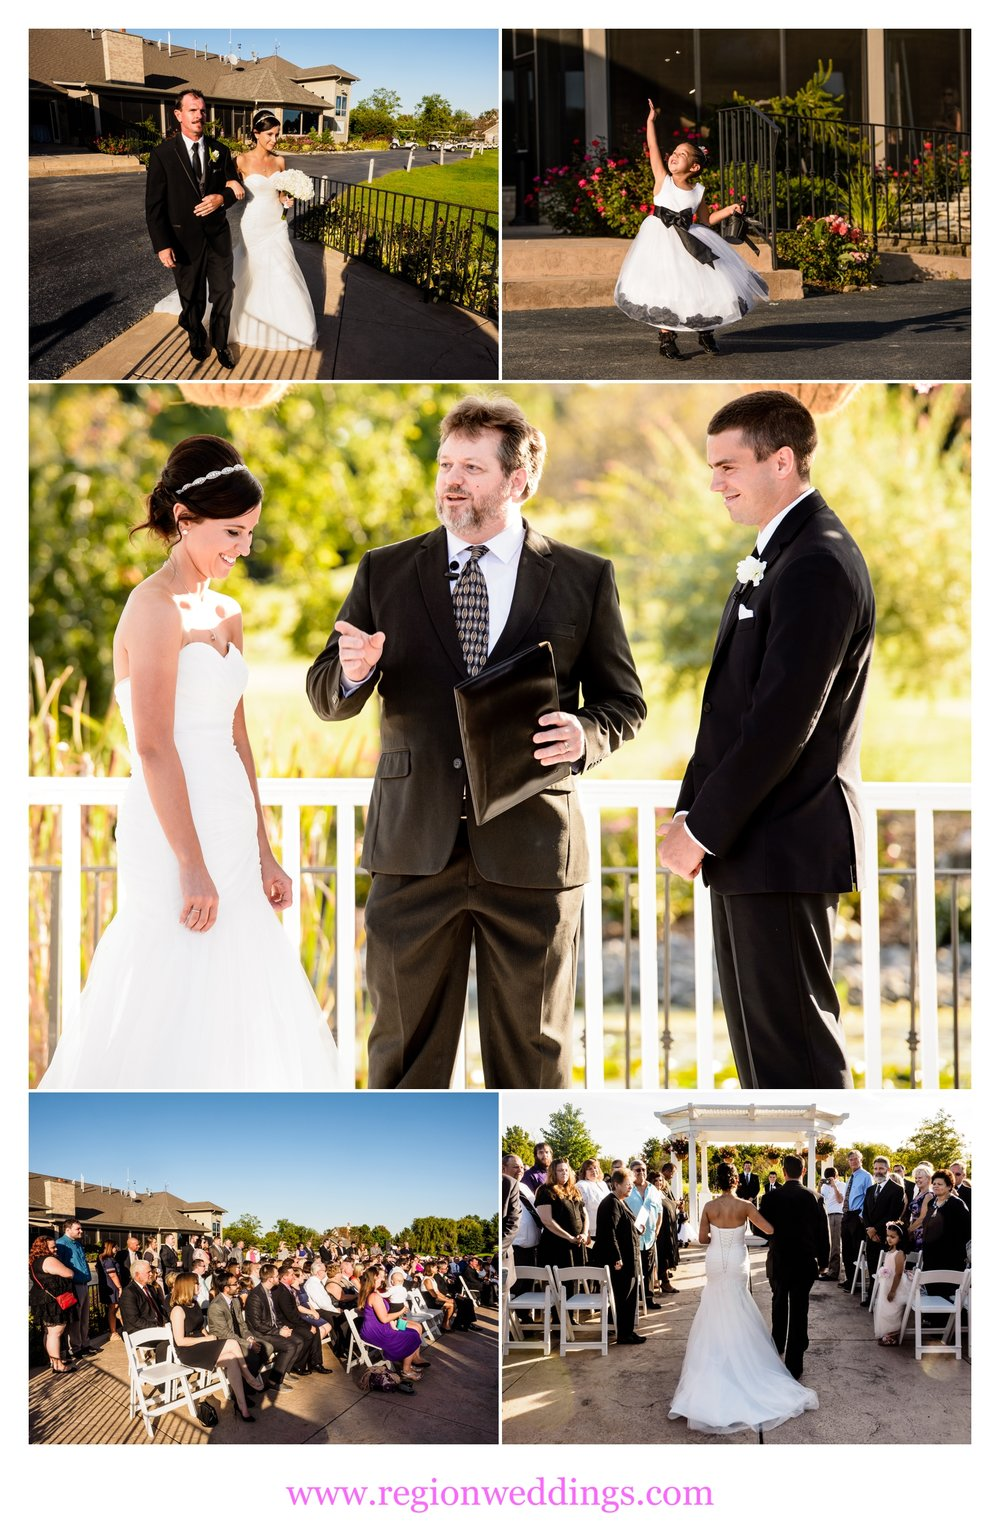 An outdoor wedding ceremony under the gazebo at White Hawk Country Club.